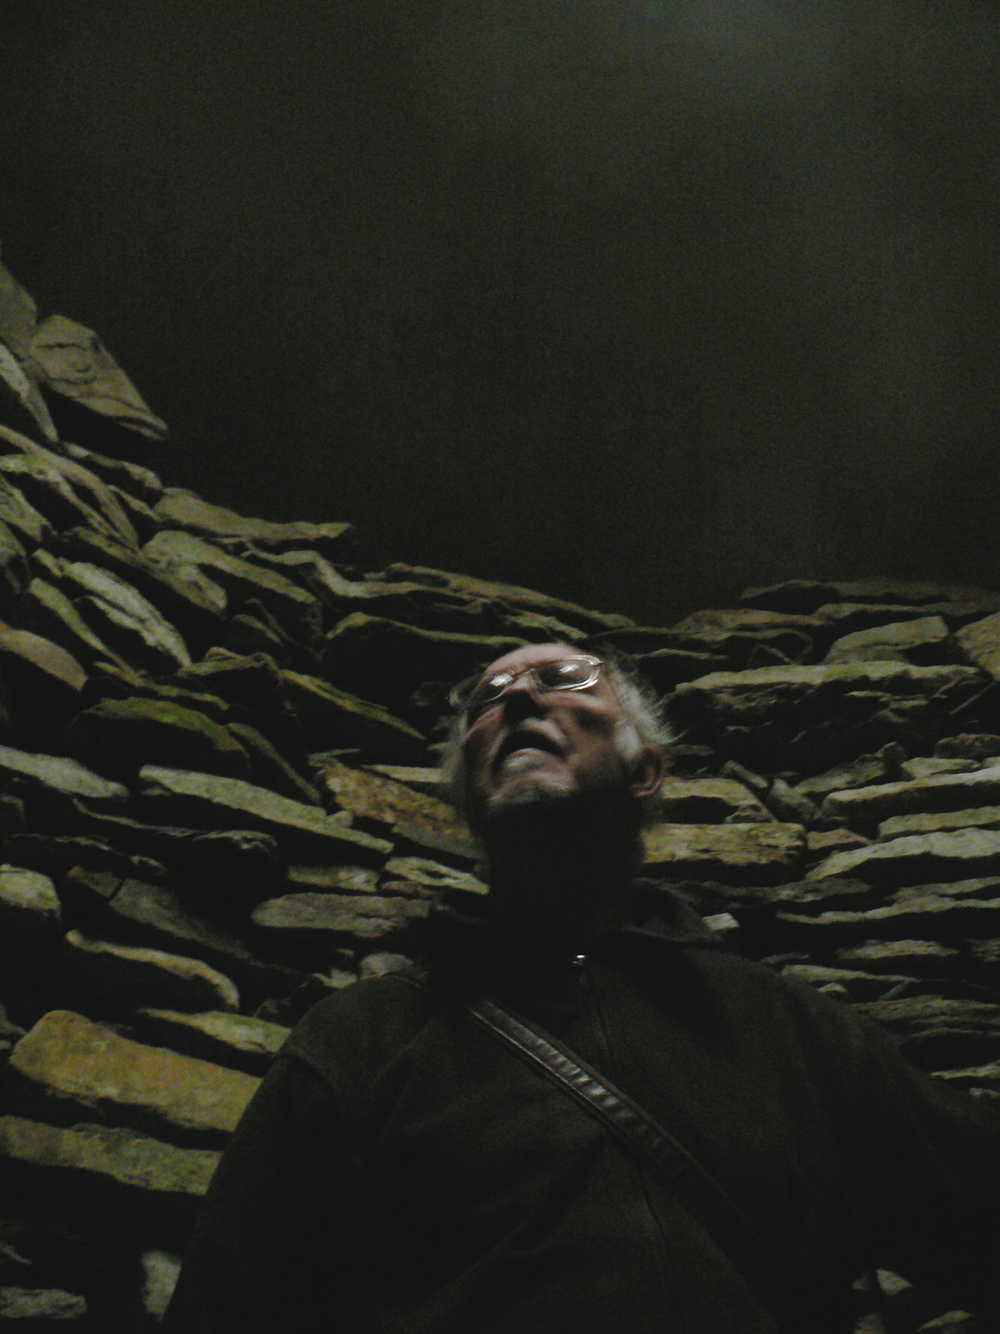 Alex Dunn in Camster Chambered Cairn, Caithness; taken by Michel Faber